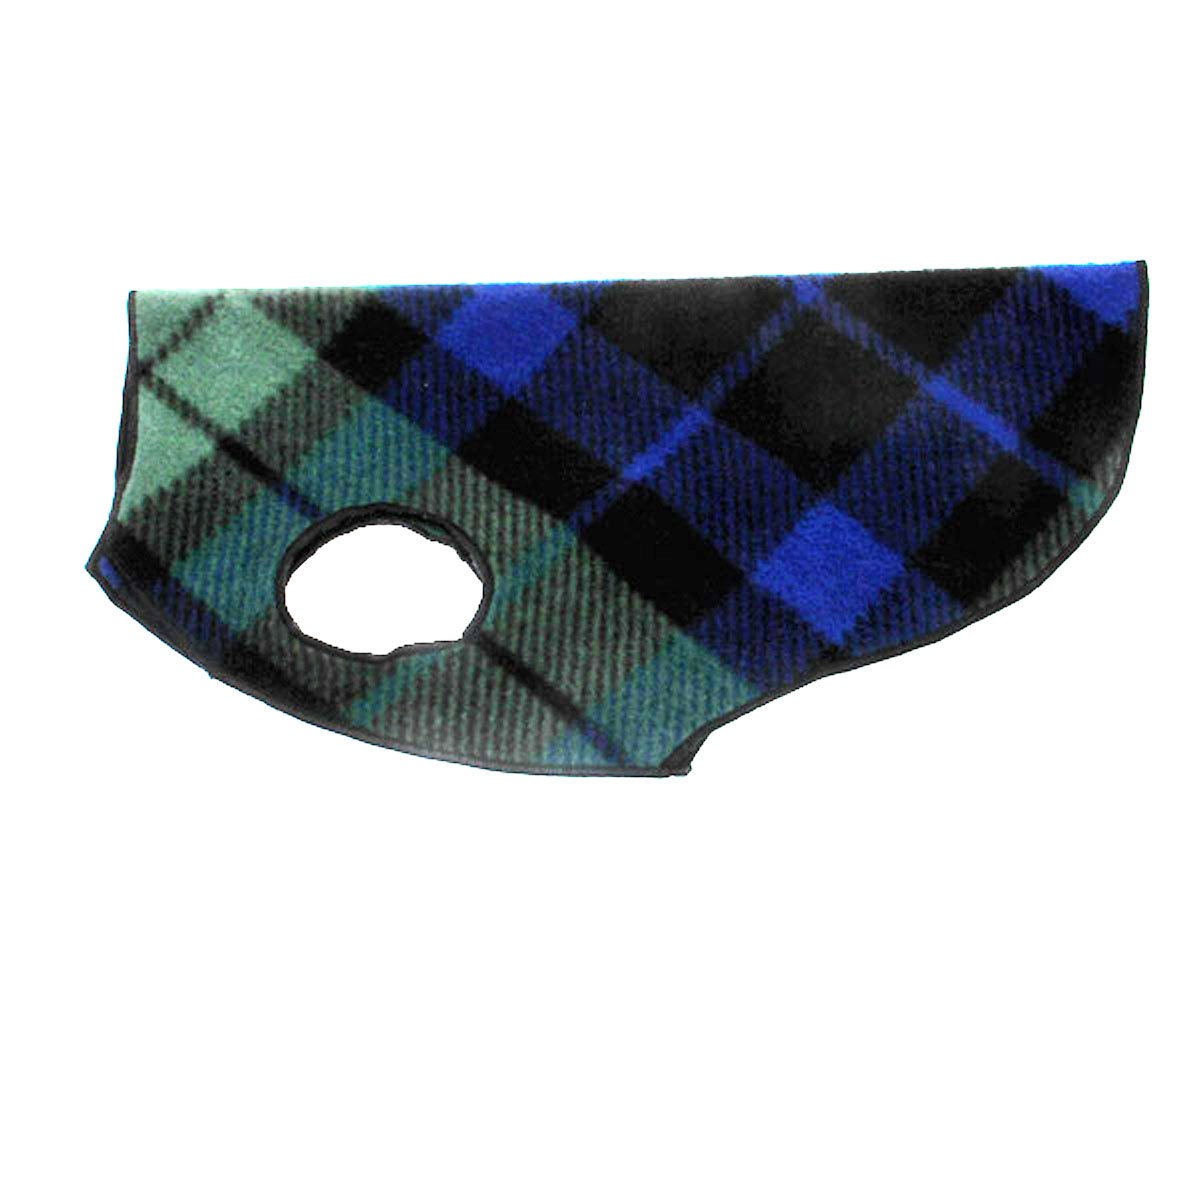 Gold Paw Fleece Dog Jacket - Black Watch Plaid